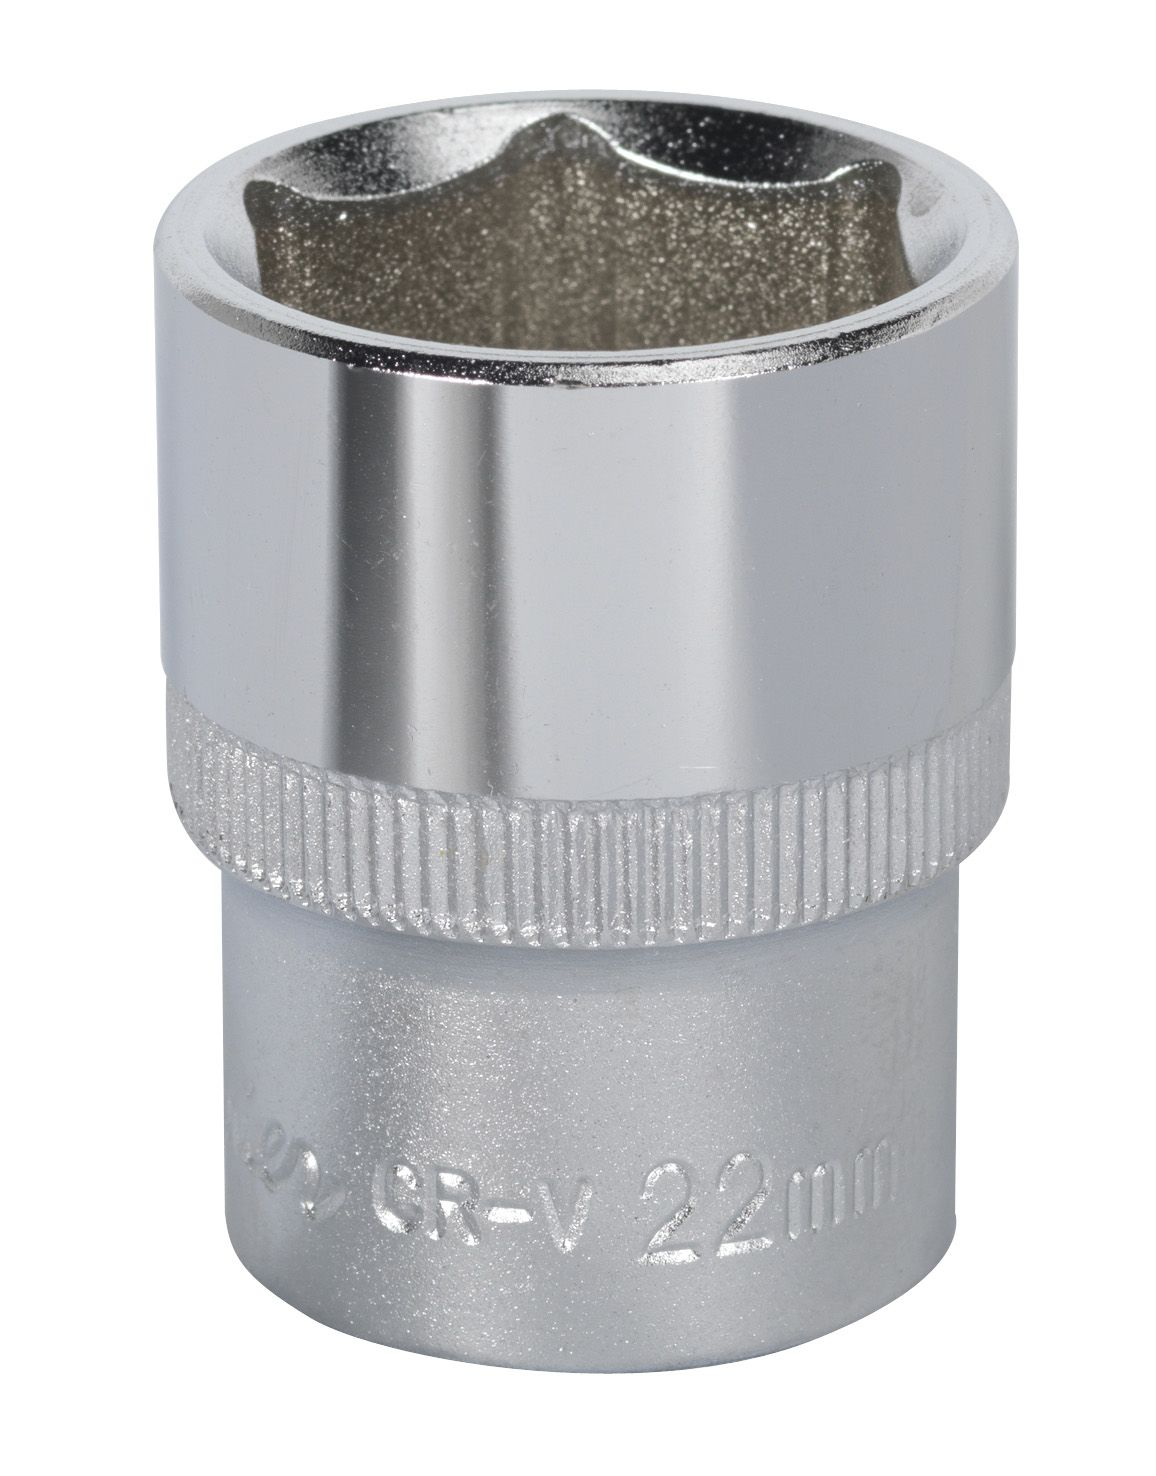 "Sealey WallDrive Sockets Metric 1/2"" Square Drive"